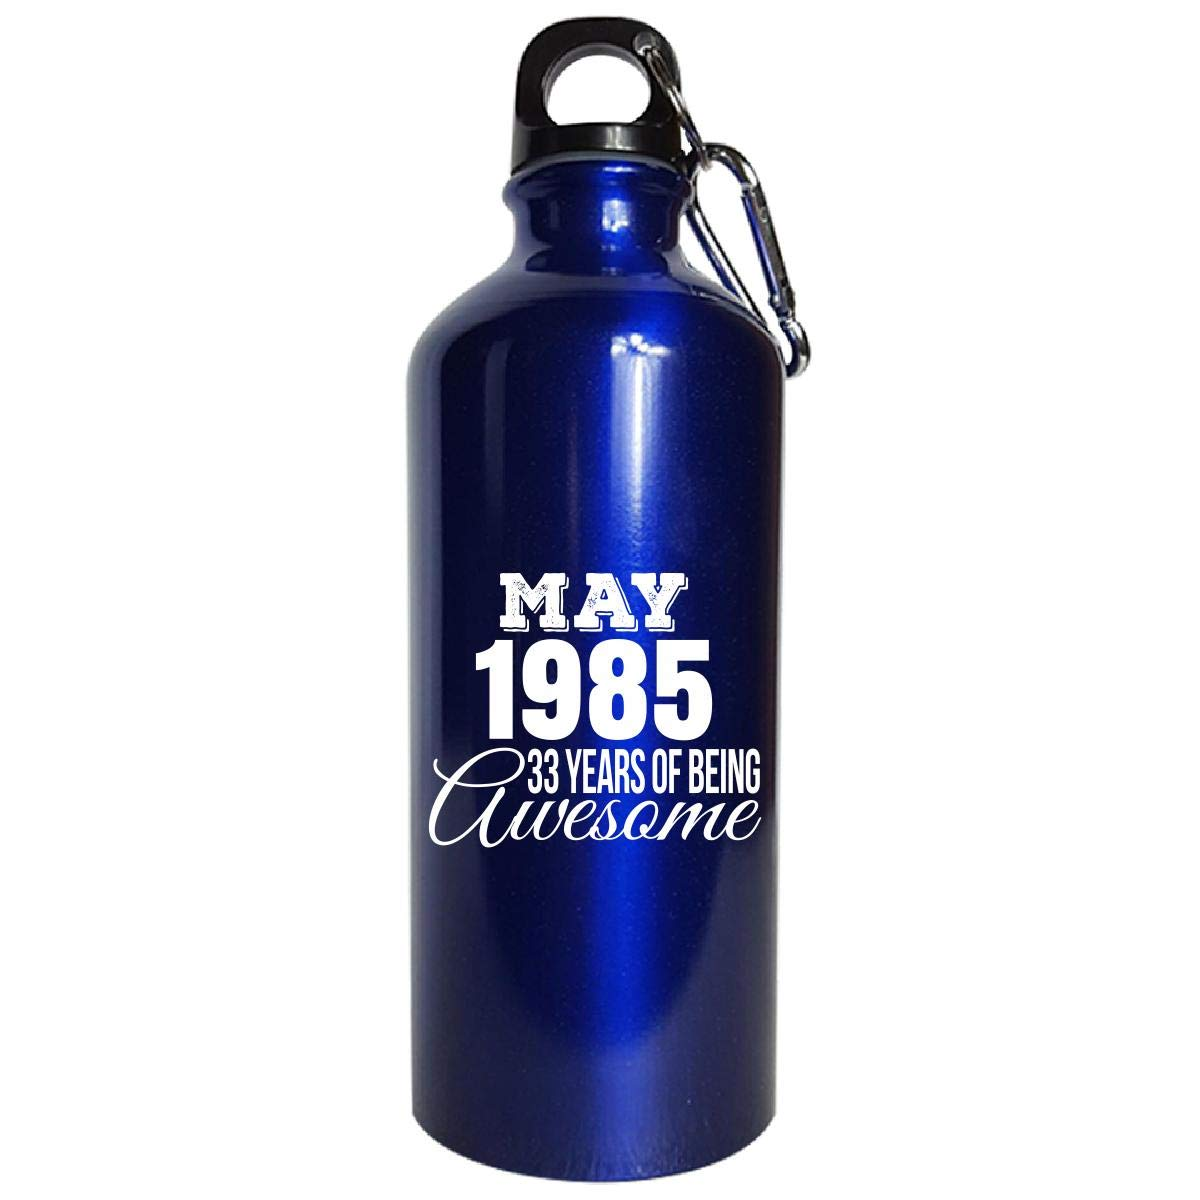 May 1985 33 Years Of Being Awesome Funny Birthday Gift - Water Bottle Metallic Blue by Shirt Luv (Image #1)